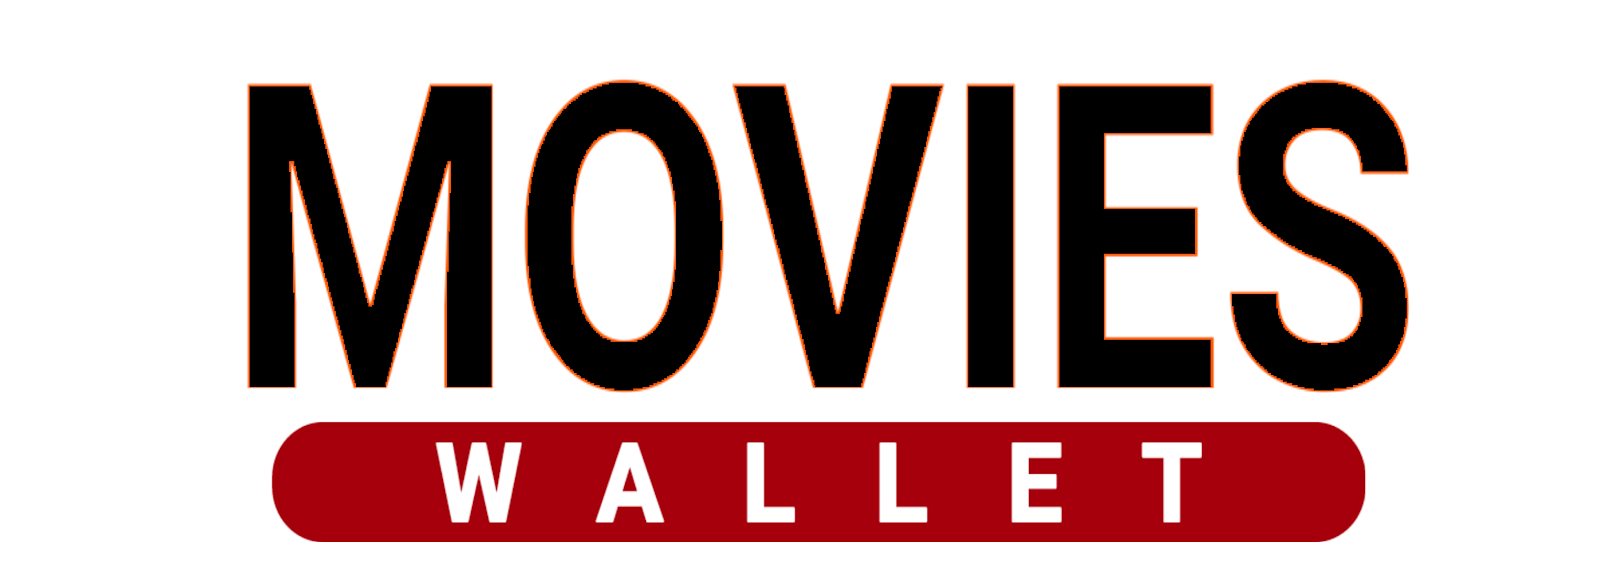 MoviesWallet